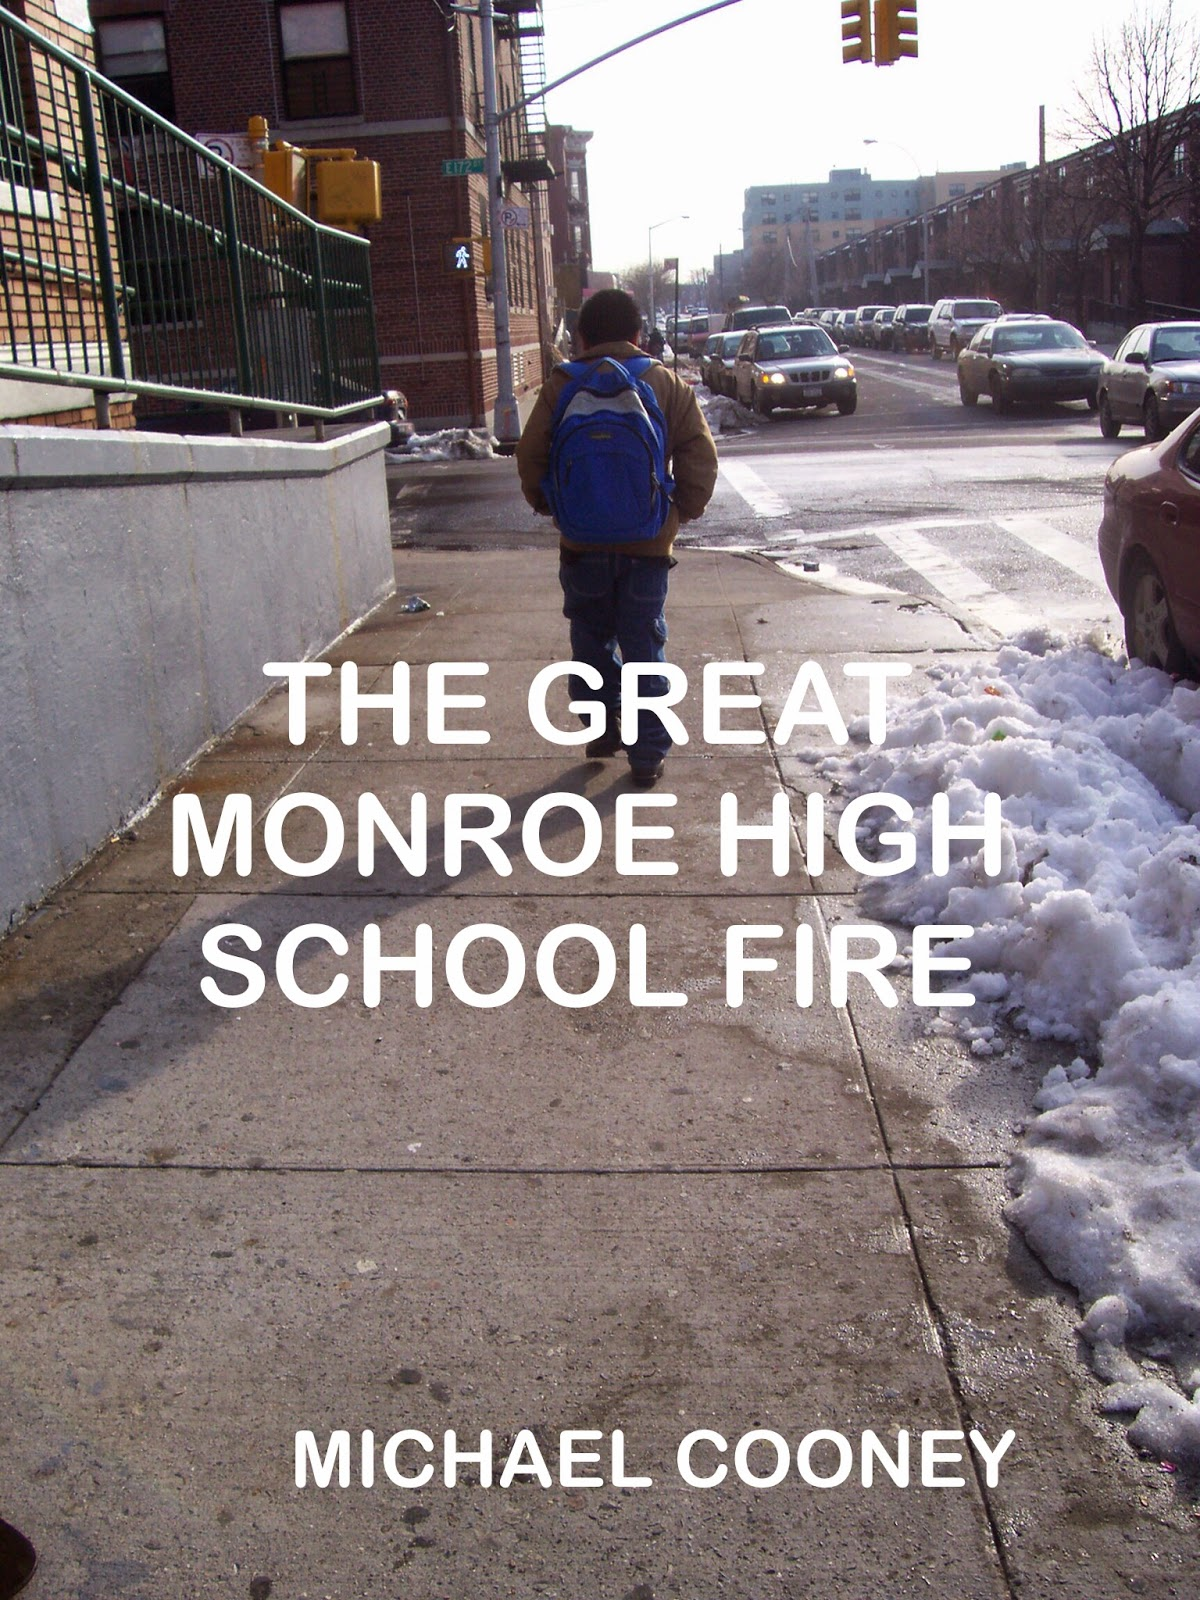 http://www.lulu.com/shop/michael-cooney/the-great-monroe-high-school-fire/paperback/product-21789356.html